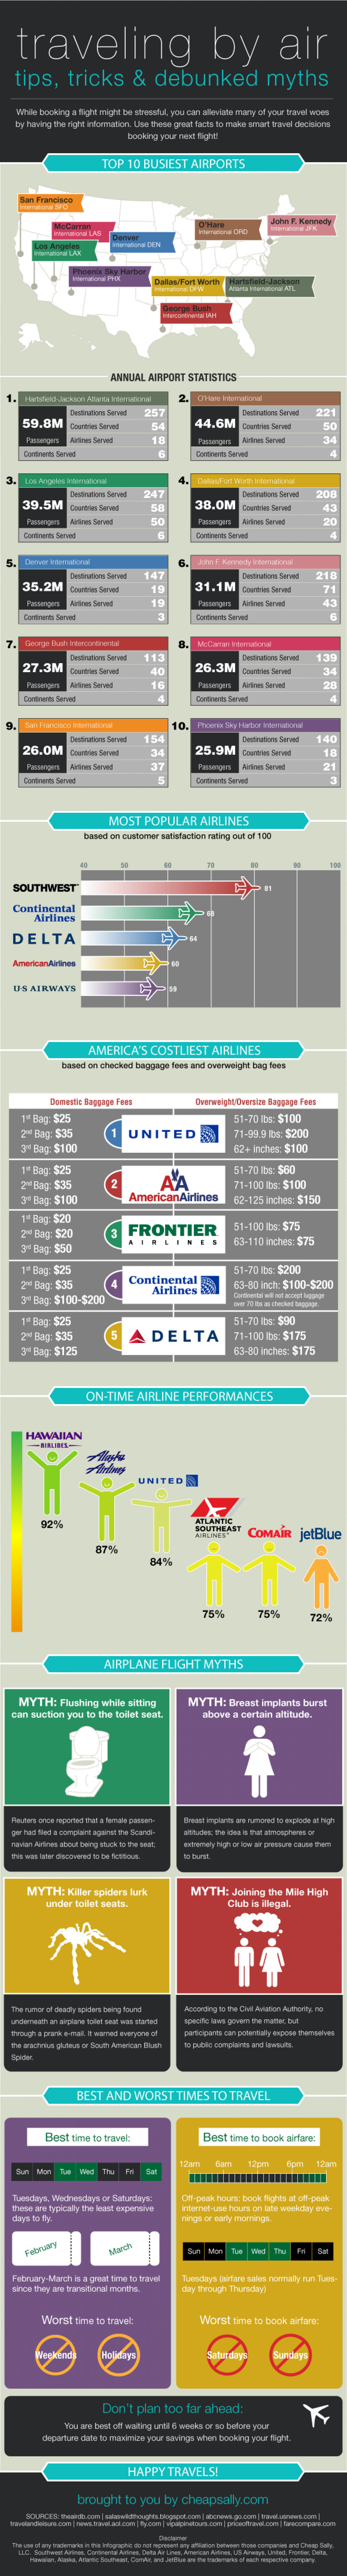 Traveling by Air: Tips, Tricks & Debunked Myths Infographic